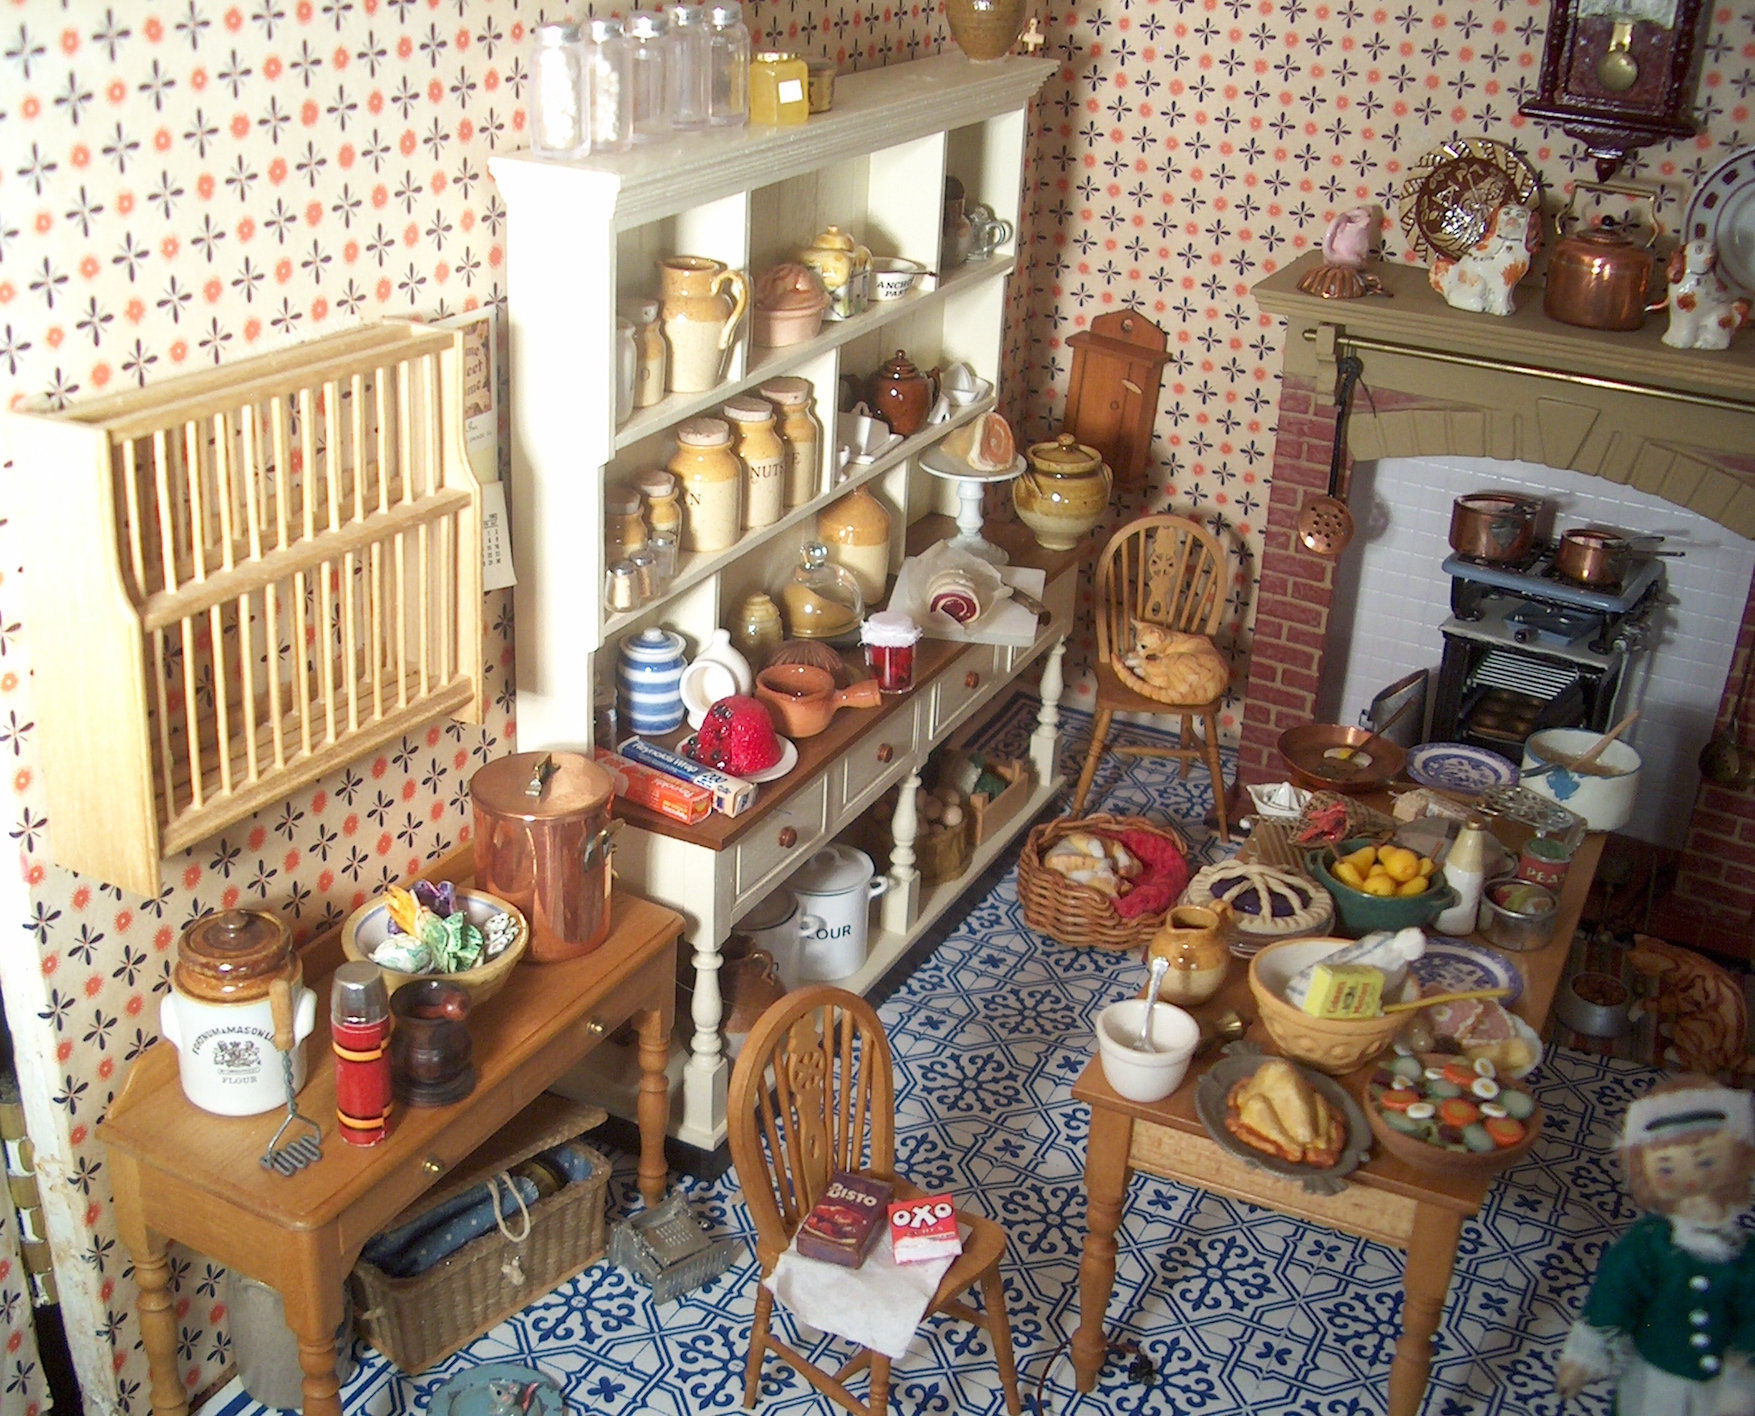 Jane Newman A Profile By Rosemary Myers Dolls Houses Past Present House Wiring I First Met When She Took Stall In The Mid 1980s On Craft Market Cambridge Where Used To Sell My Work